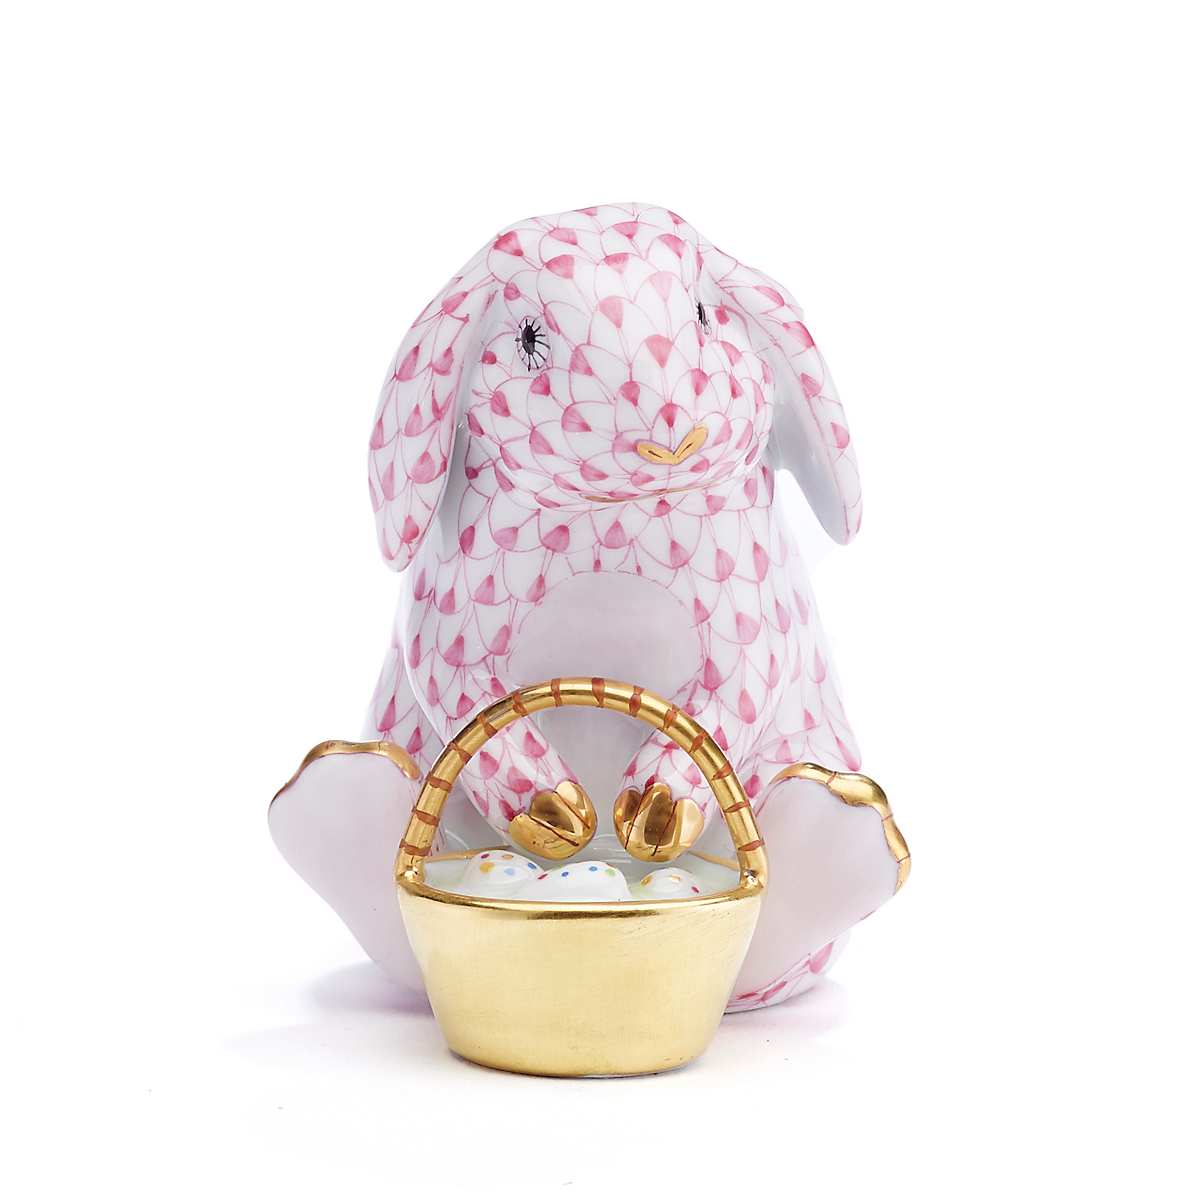 Herend Easter Bunnies Eggstravagant Bunny